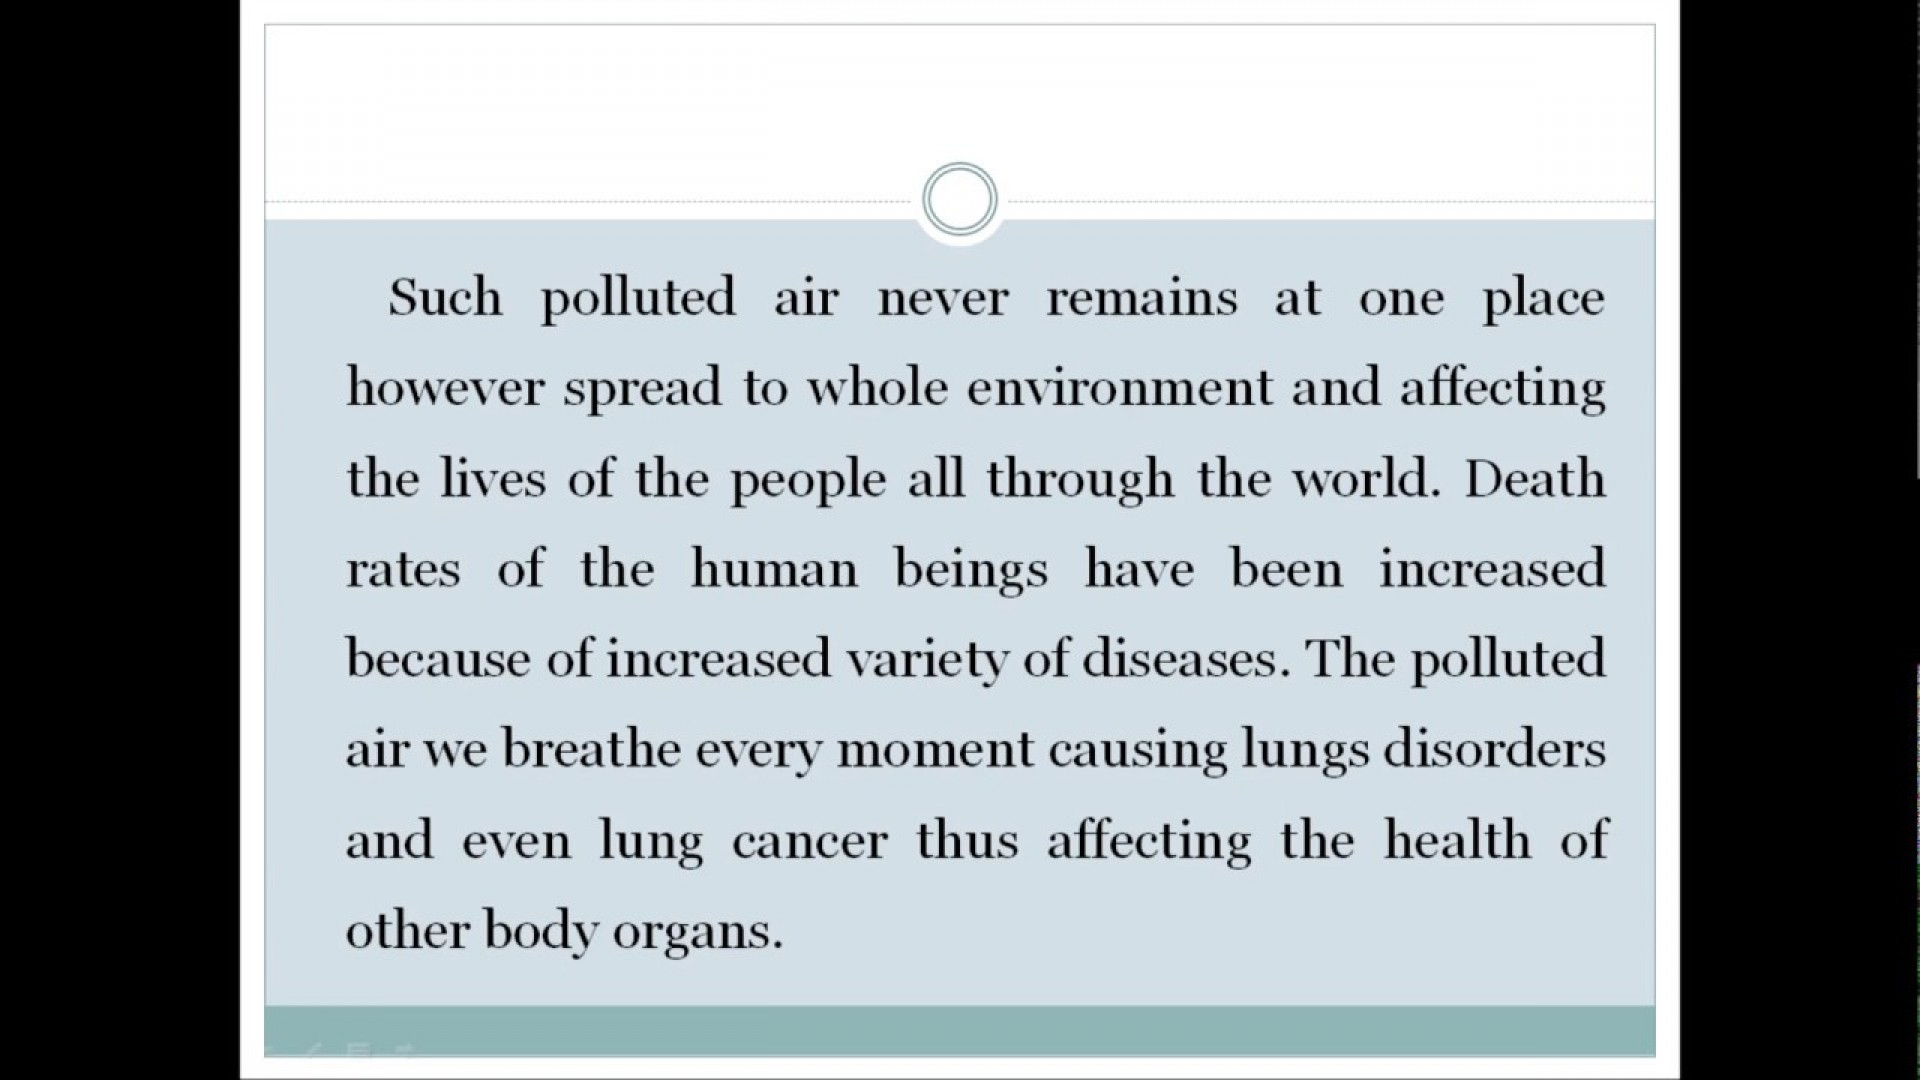 012 Essay Example Cause And Effect On Pollution Astounding Water Noise About Land 1920